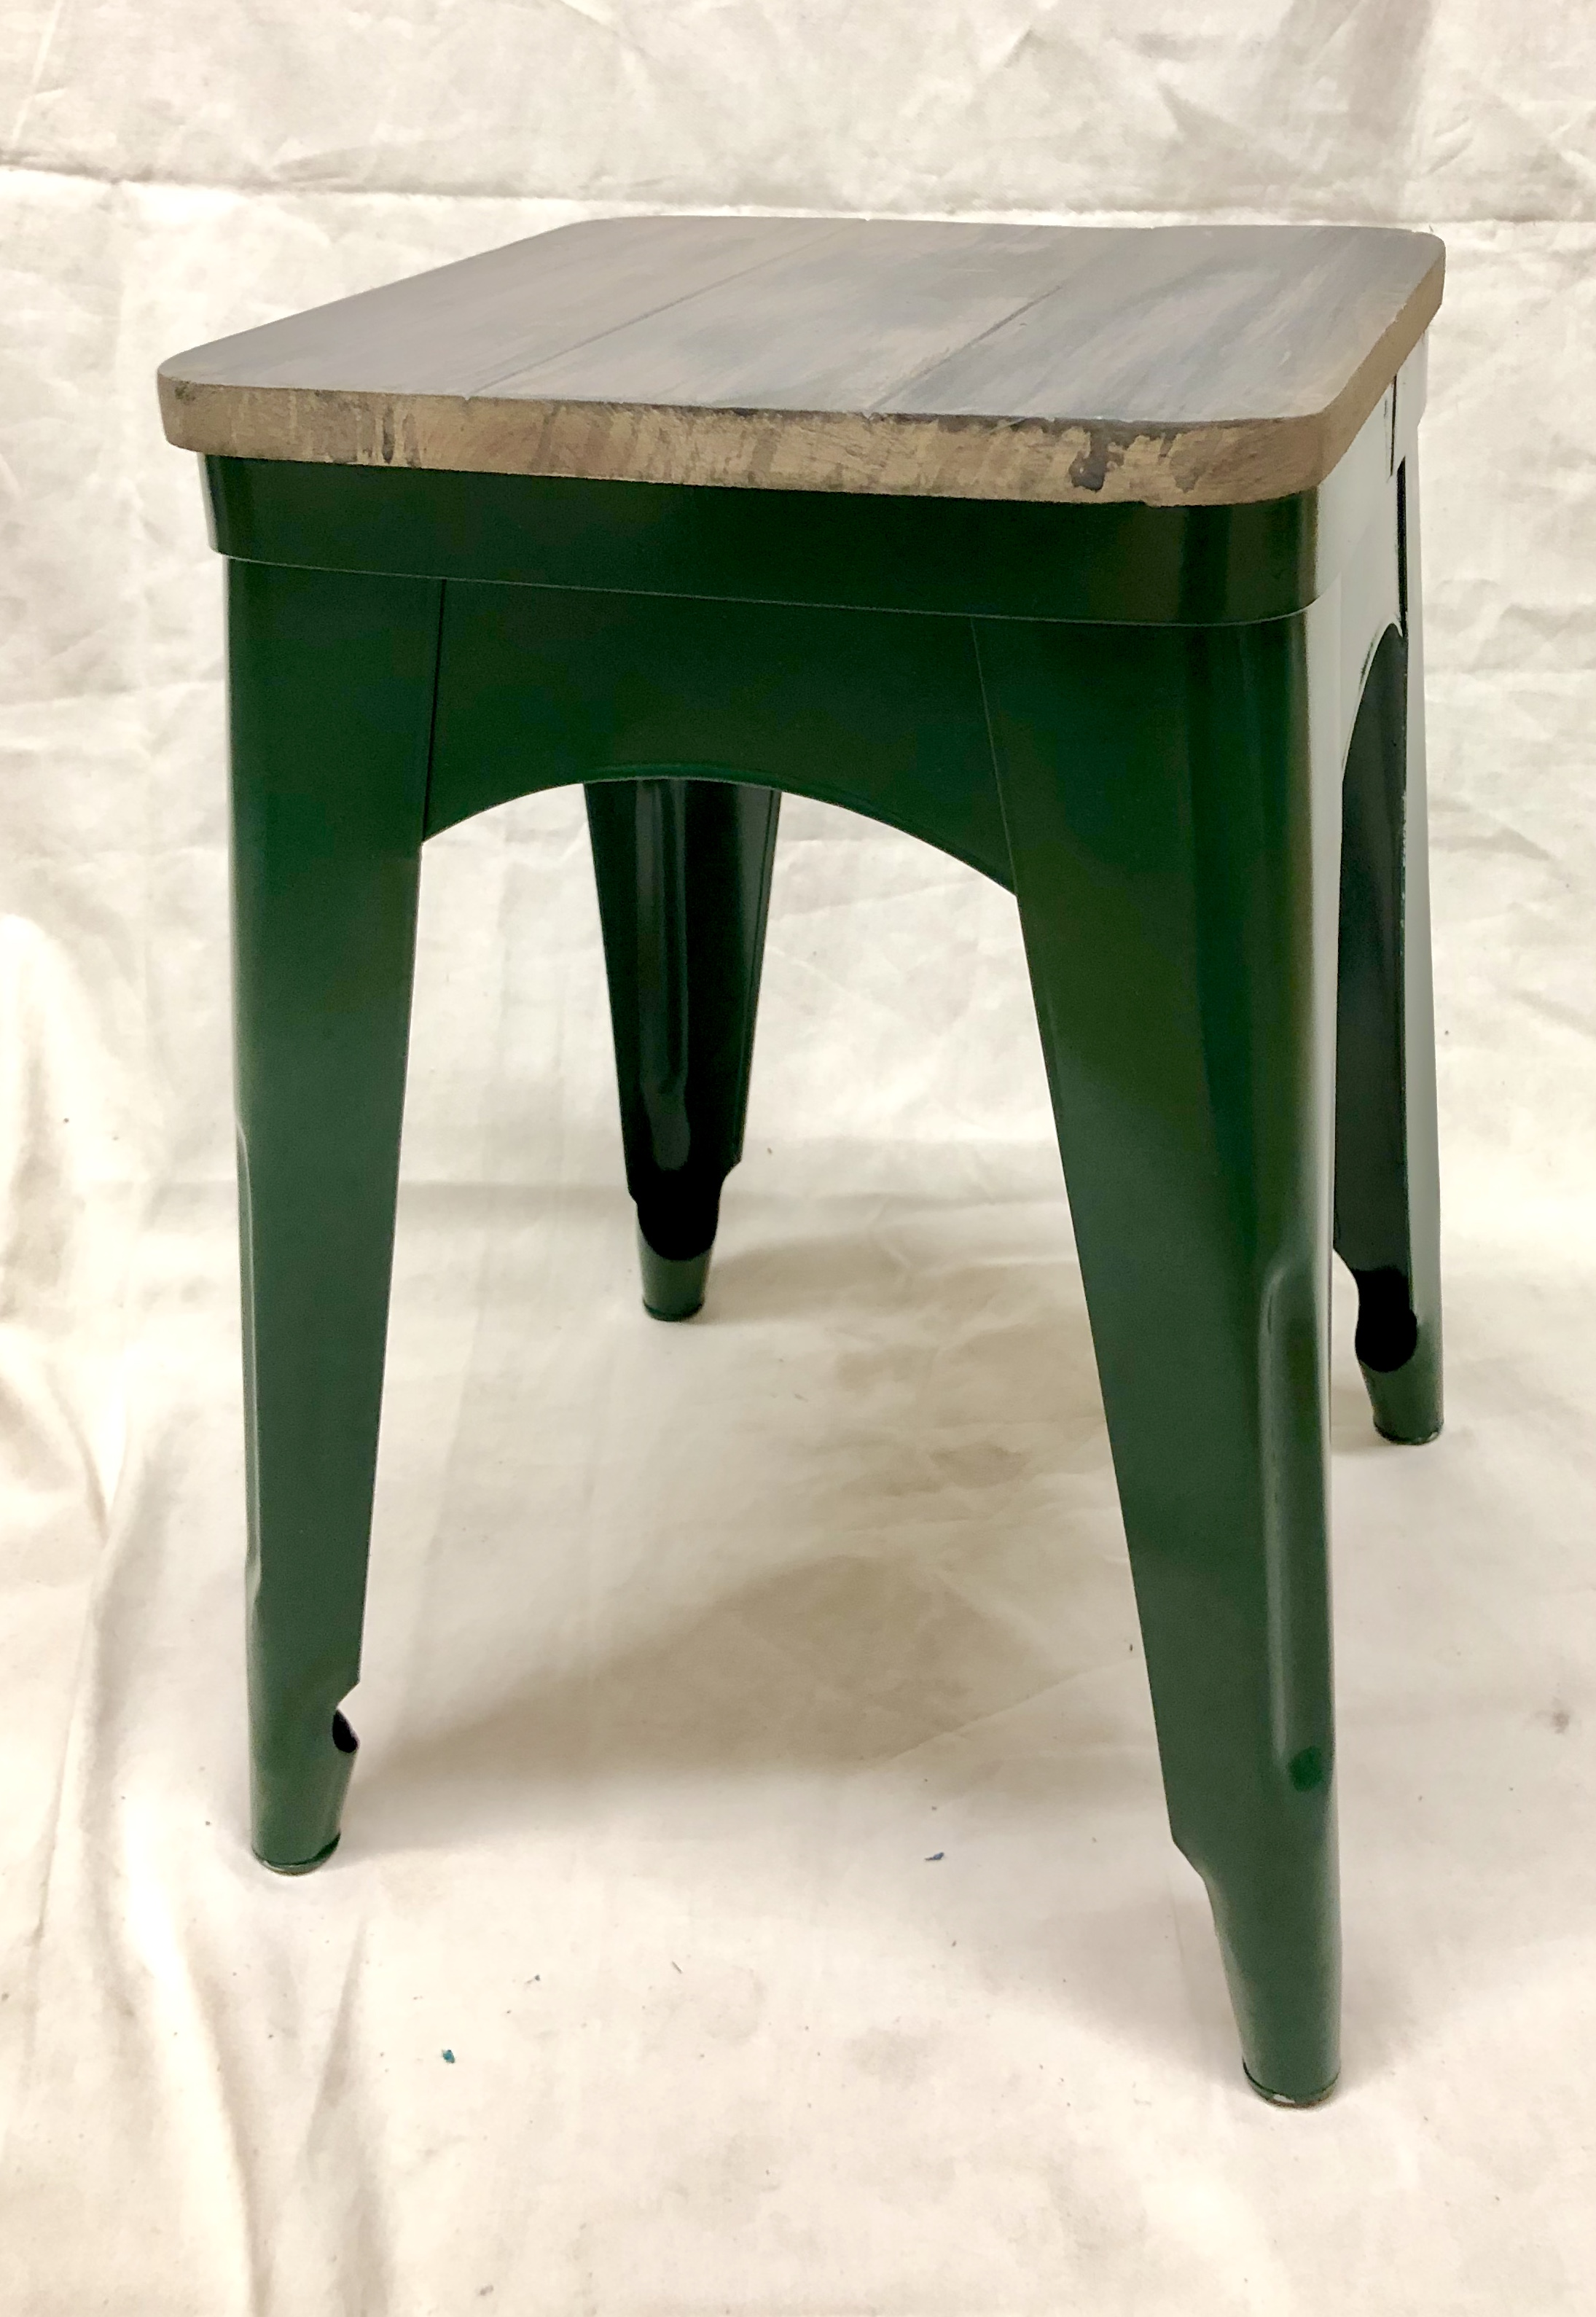 Greenwood Stool - $10